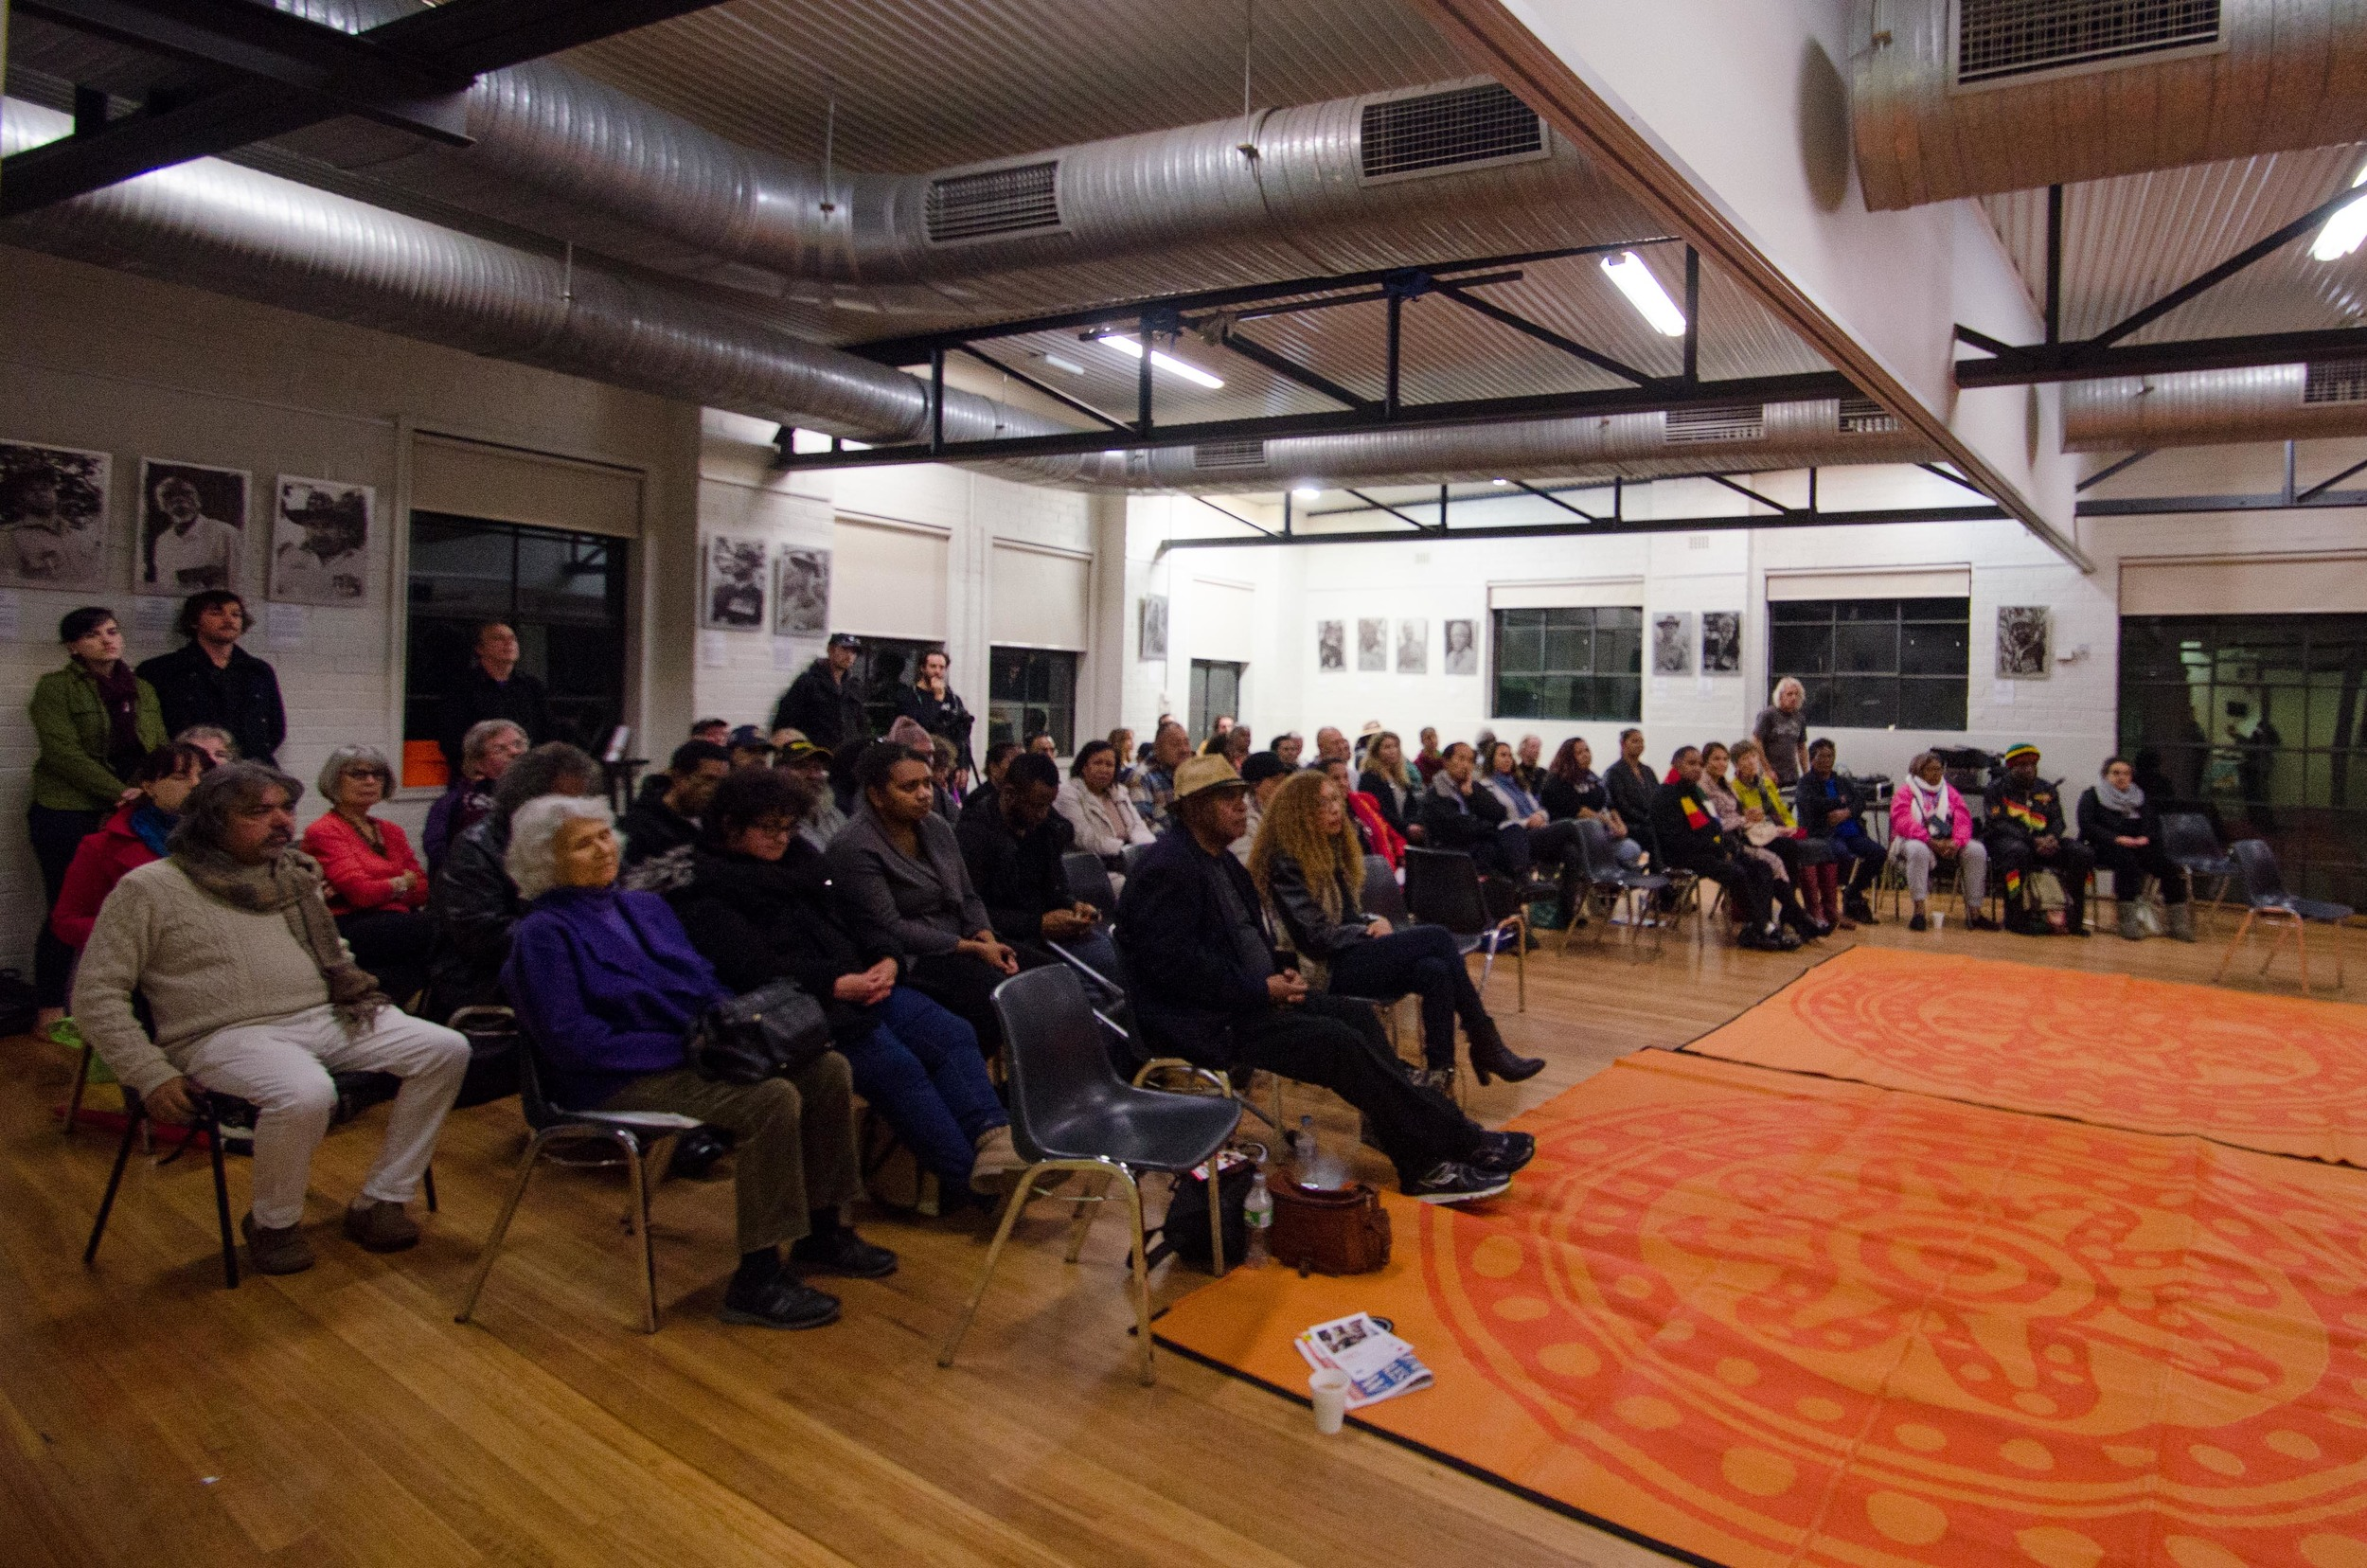 June 3rd Mabo Day at Redfern Community Centre: Photo of the many people who attended the event